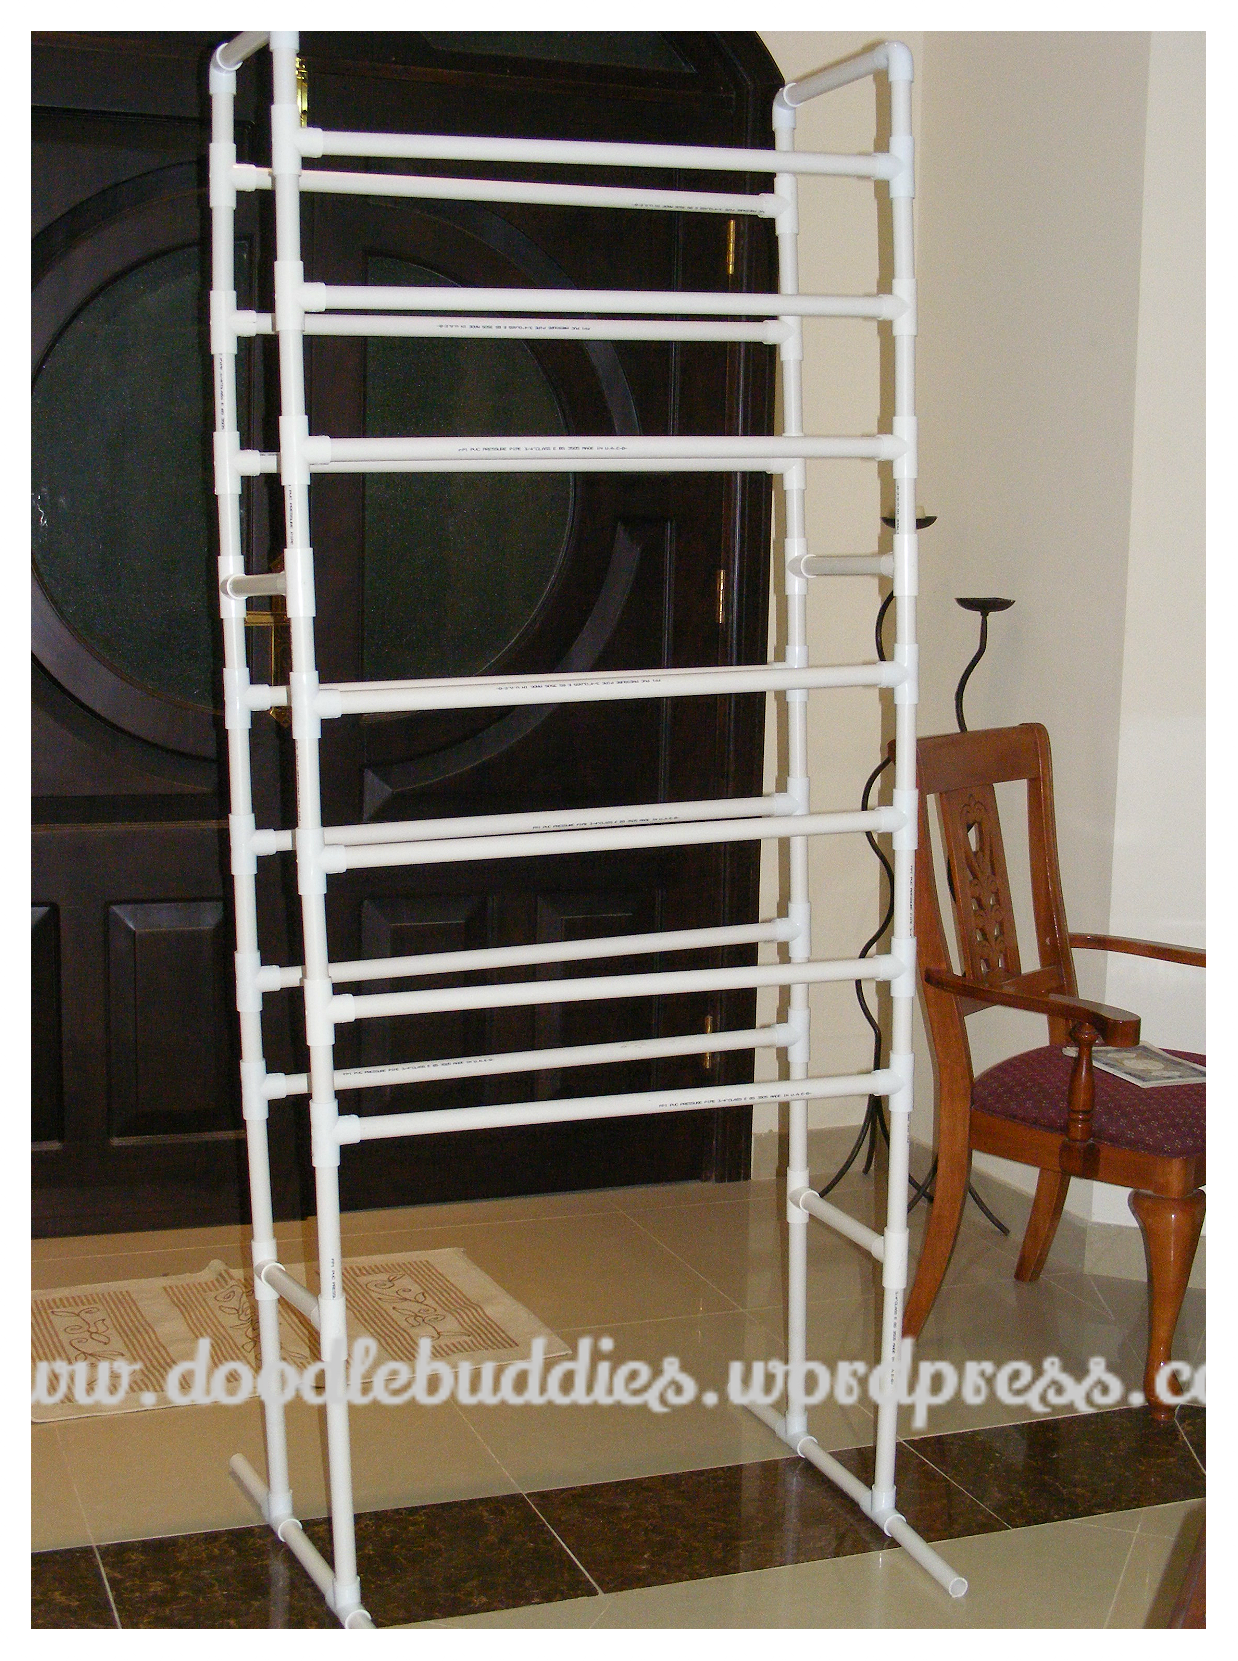 Craft Paper Display Rack with PVC pipes.